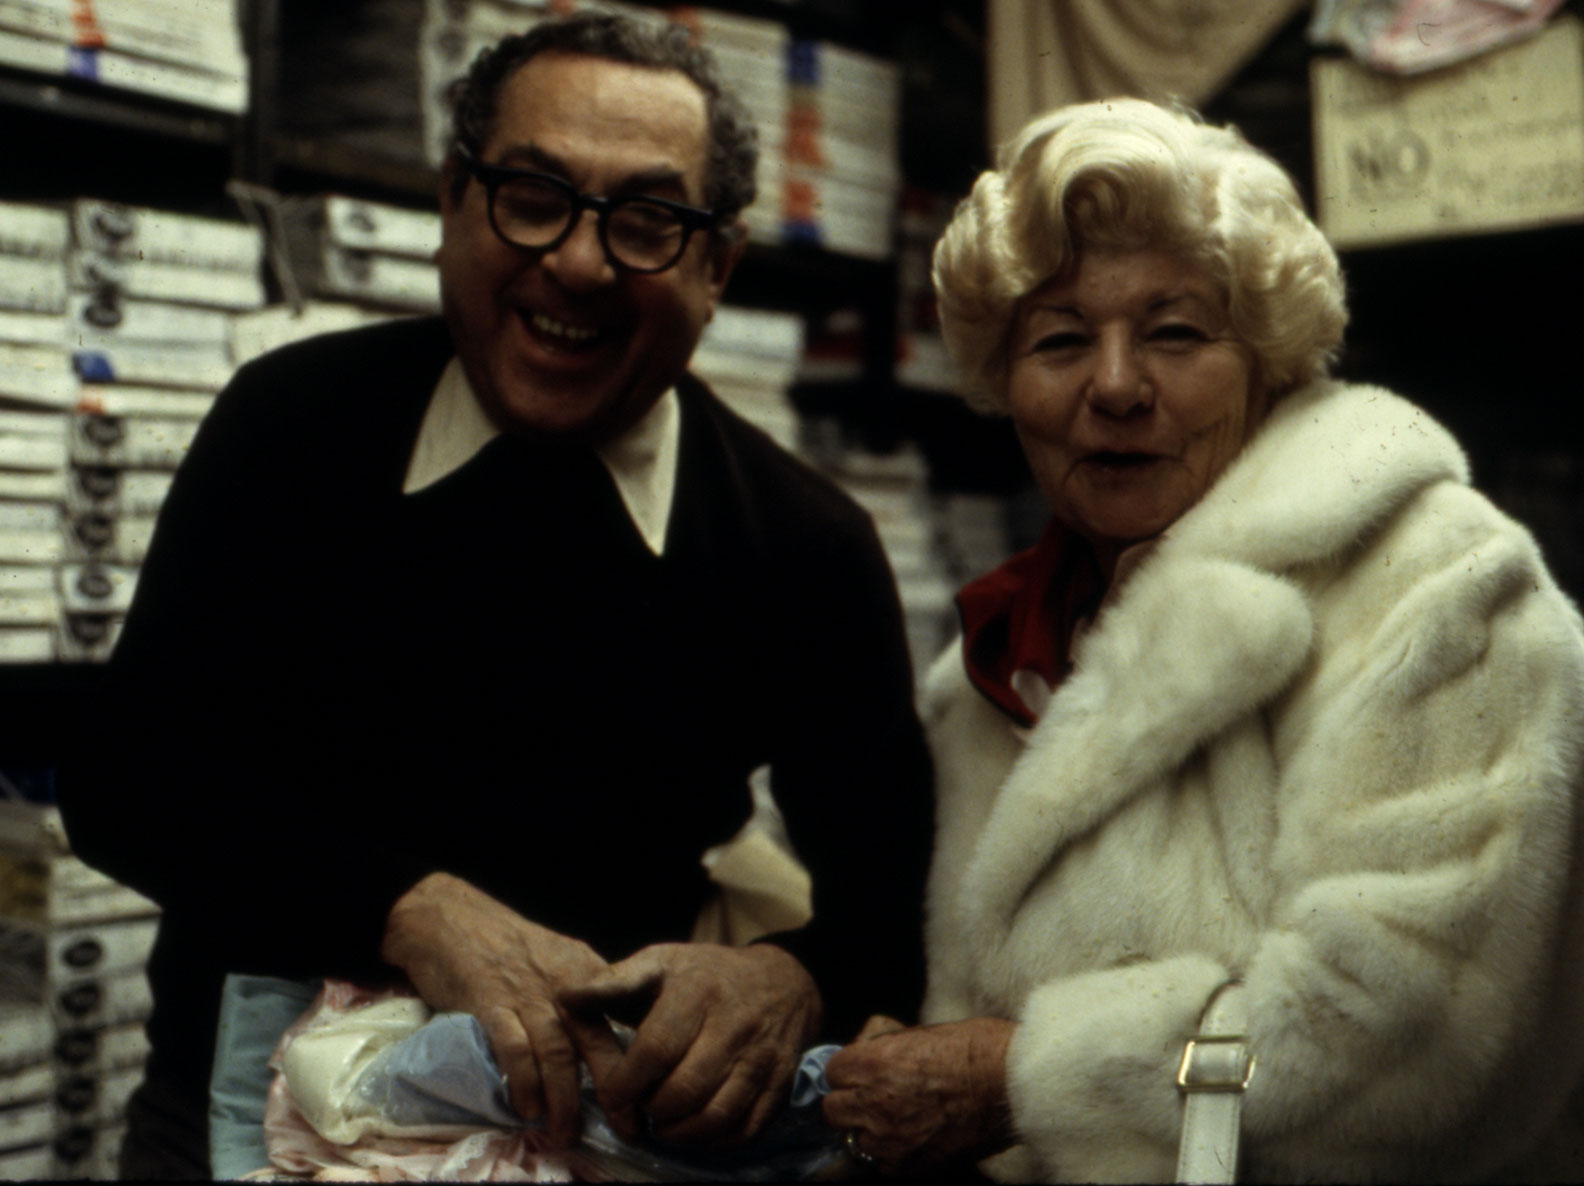 Photo portrait of the Mr. and Mrs. Meda in their underwear shop in 97 Orchard Street